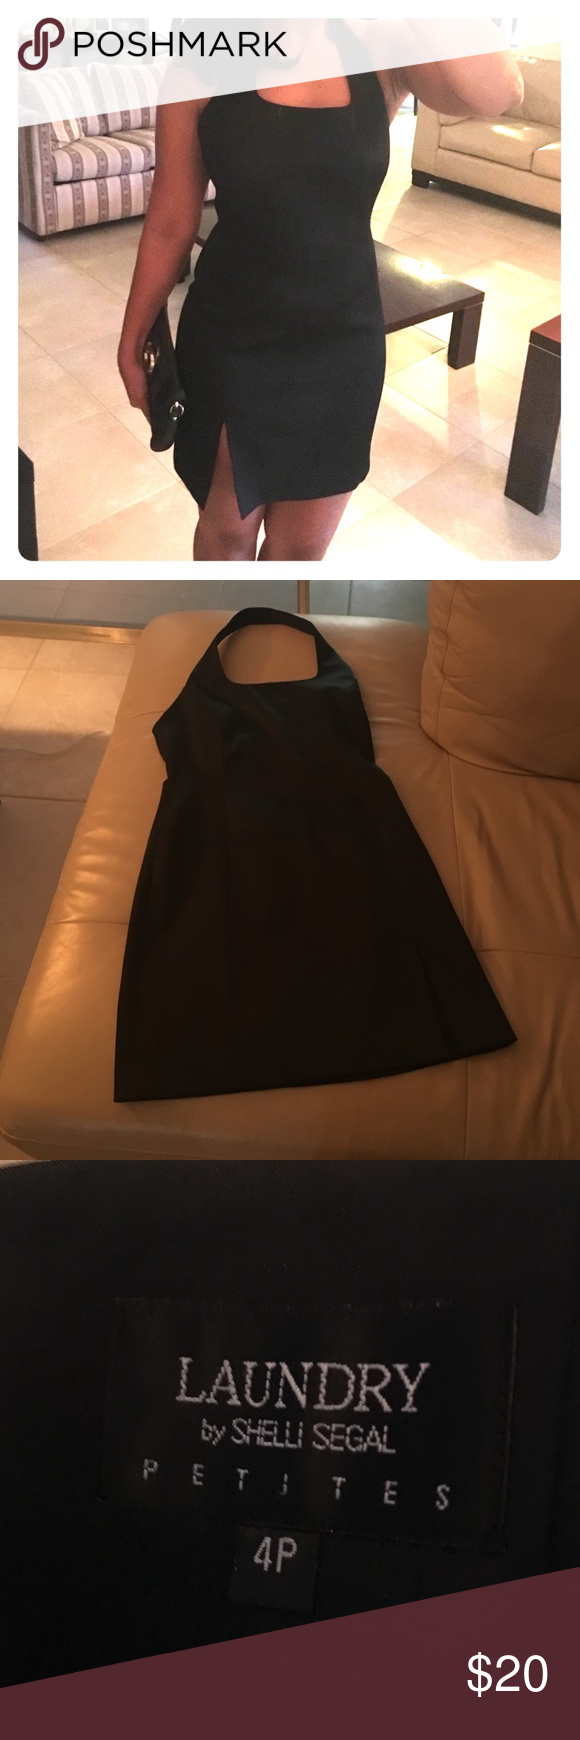 LBD Laundry Versatile in excellent condition! Black halter dress from laundry Laundry by Shelli Segal Dresses Mini